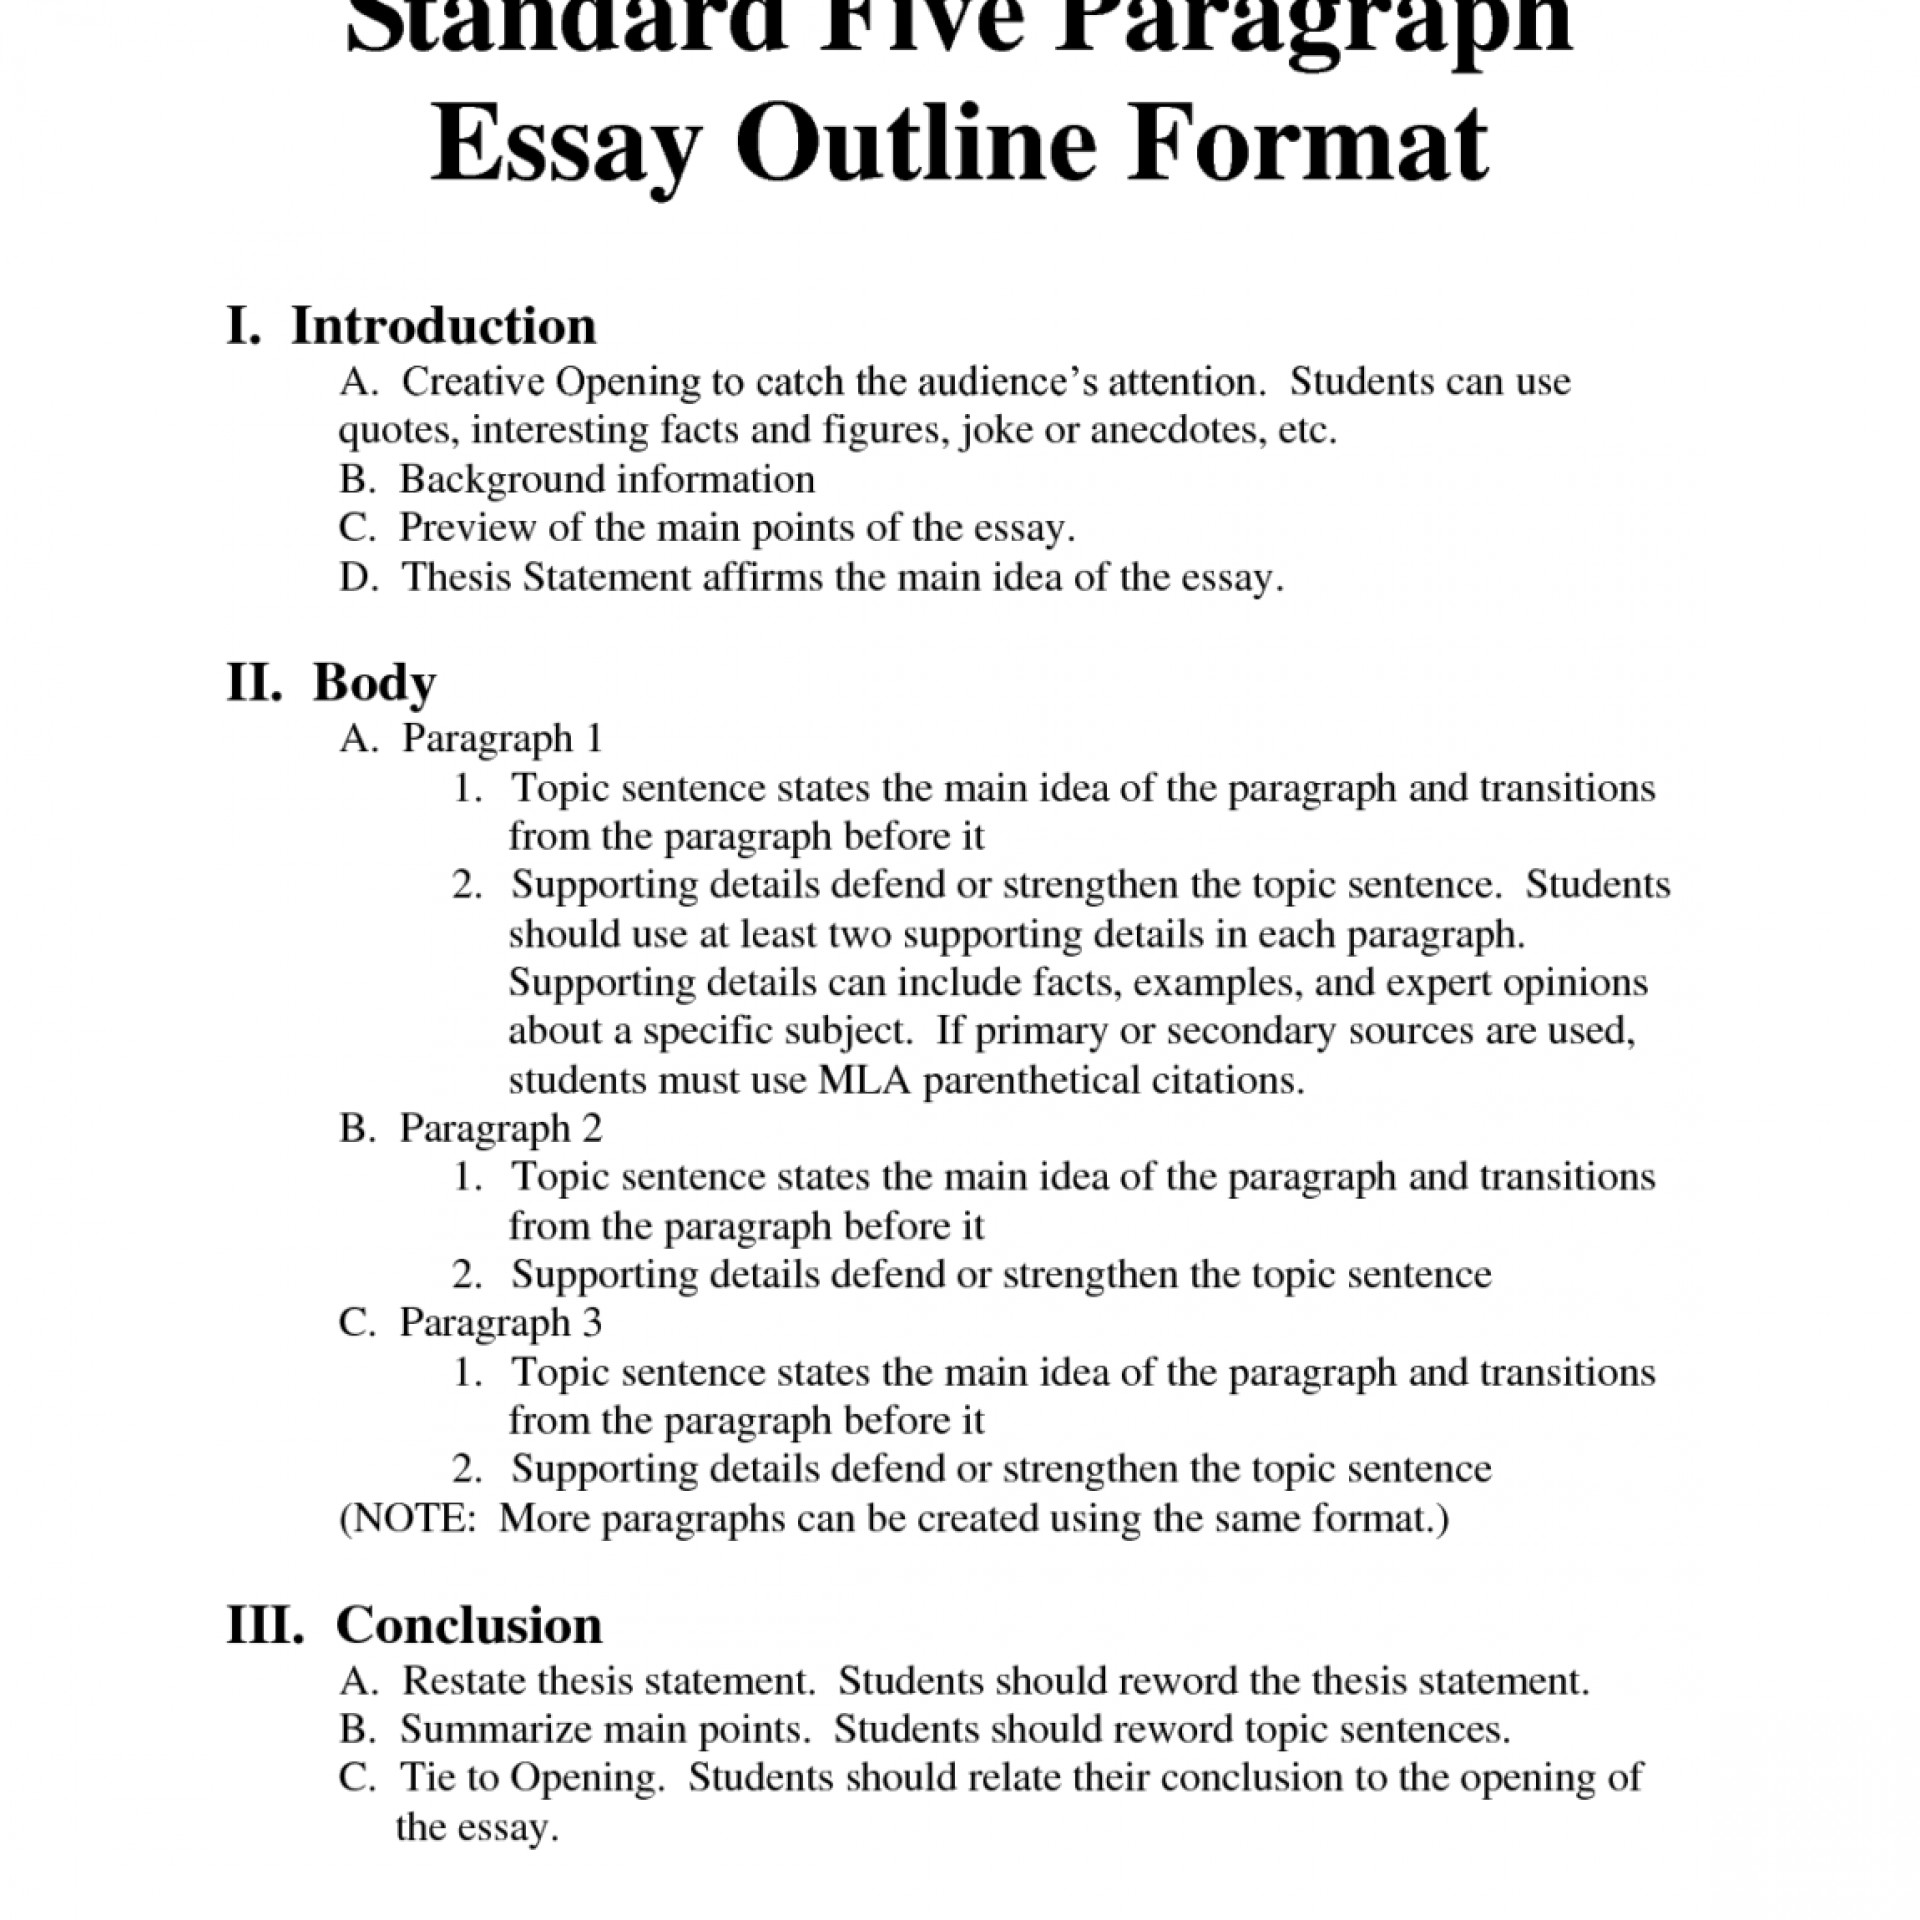 001 Essay Example Joke Five Page Outline Paragraph Blog And Inside Of Amazing Writer Joker In Hindi Jokes English 1920